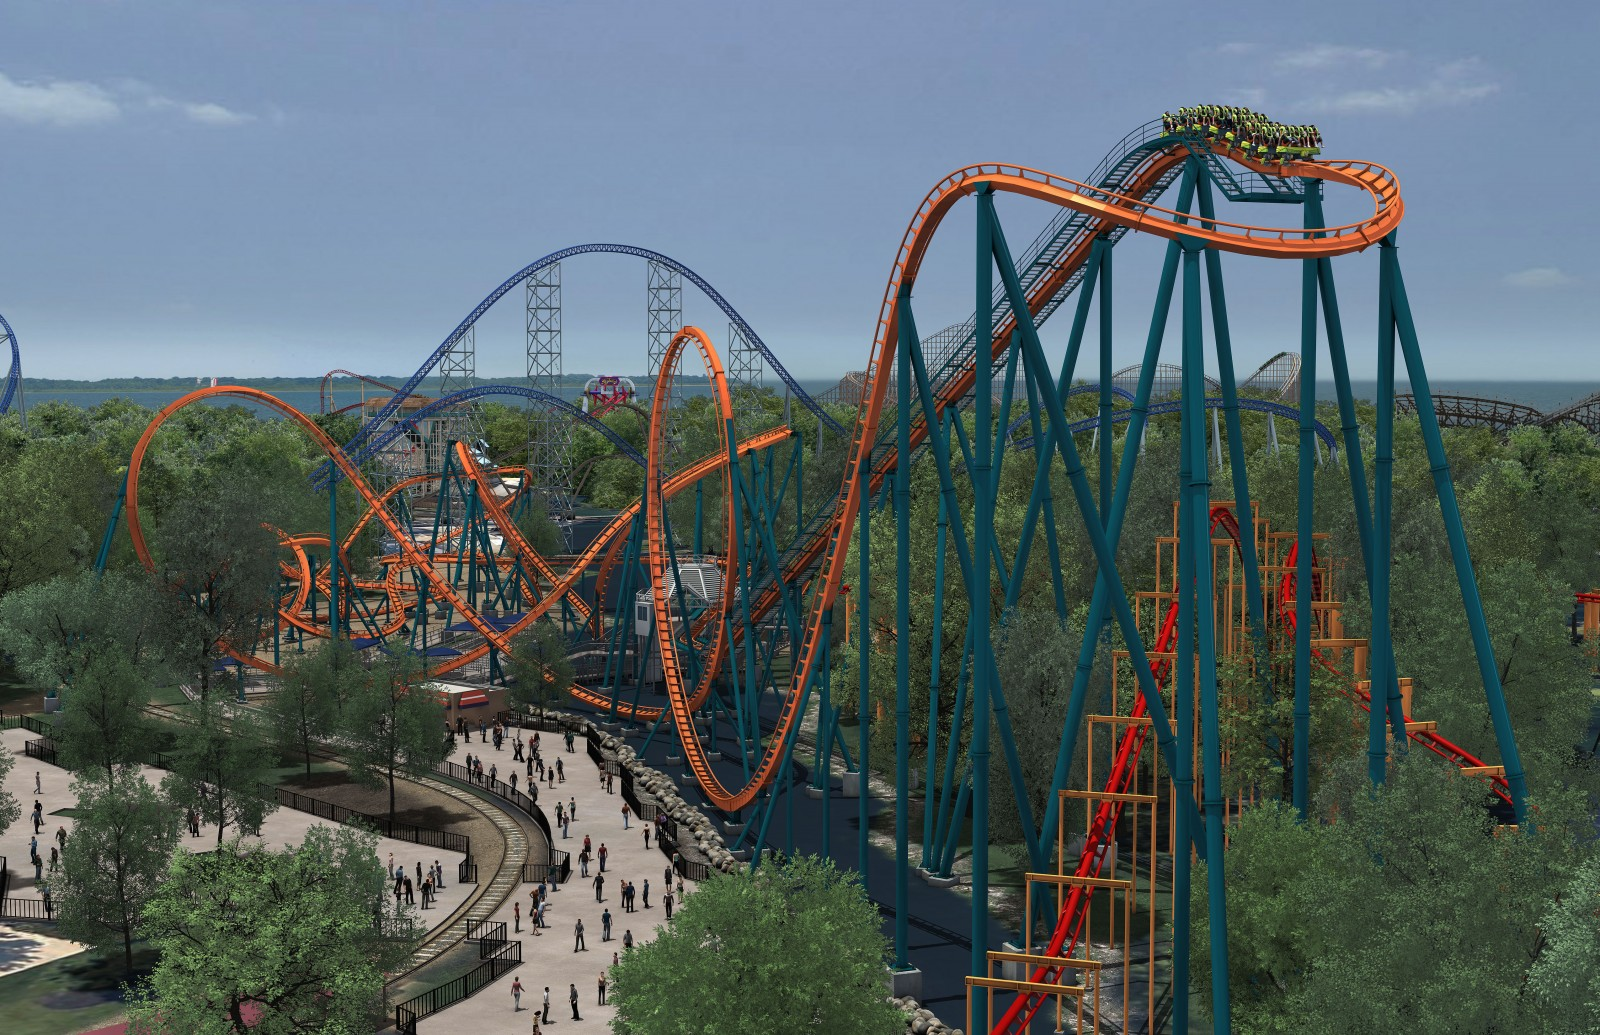 Rougarou First Hill (picture courtesy of Cedar Point)|Sharon the Moments Blog